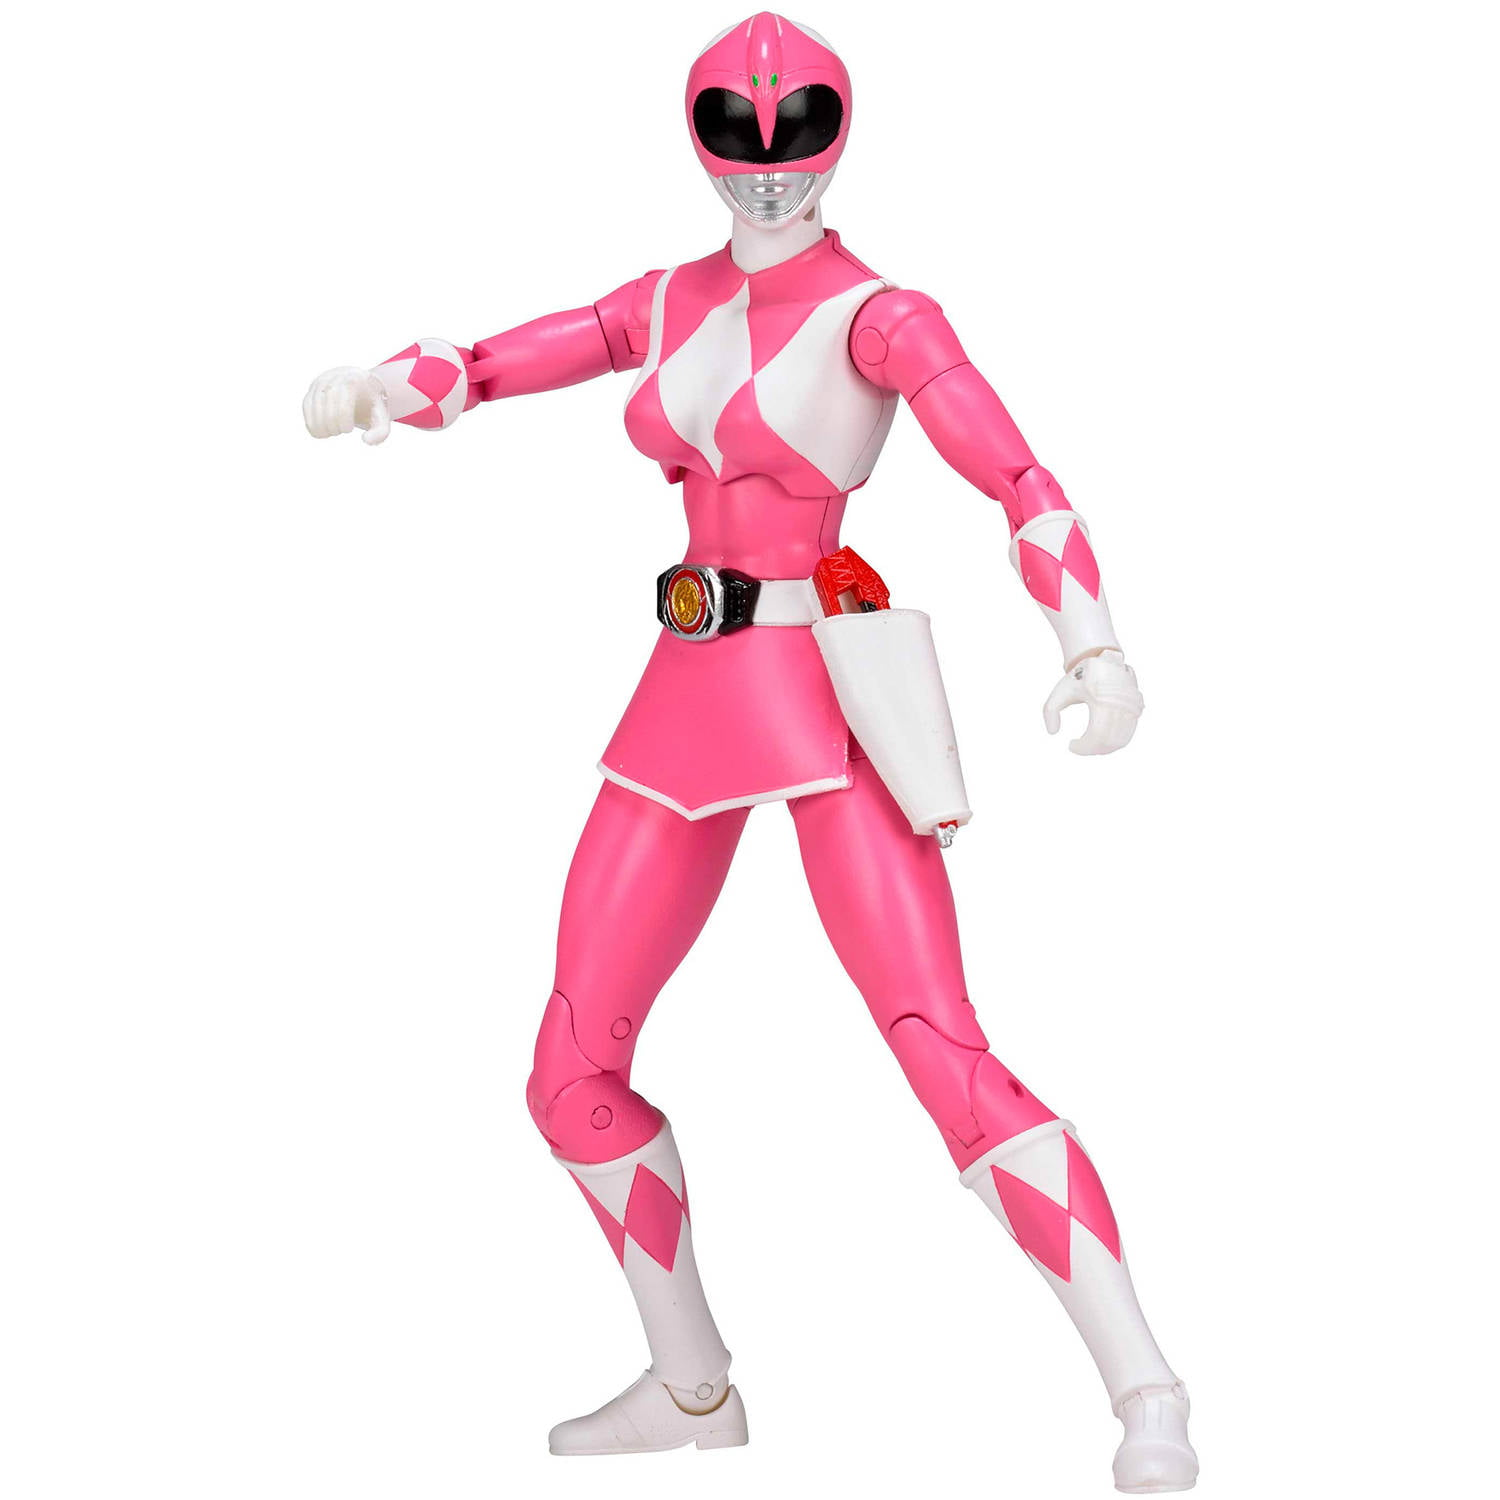 Power Rangers Legacy Mghty Morphin Pink Ranger by Bandai America